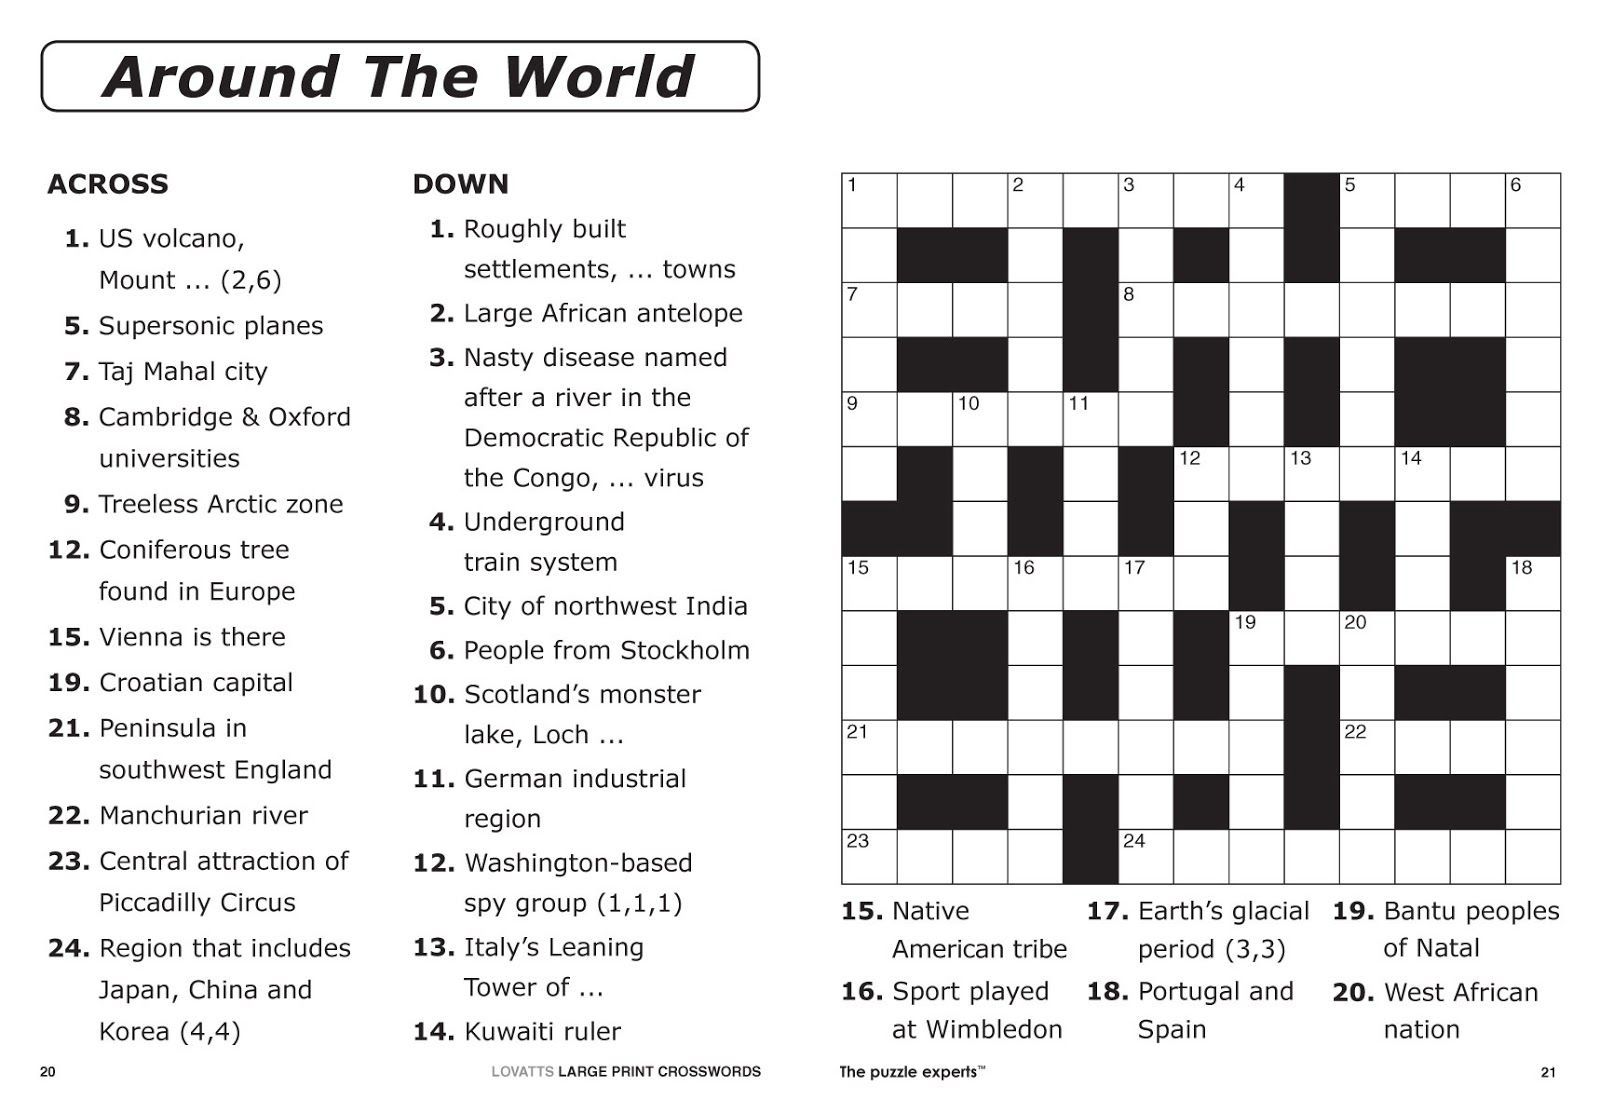 Free Printable Large Print Crossword Puzzles | M3U8 - Free Printable Puzzles For 8 Year Olds